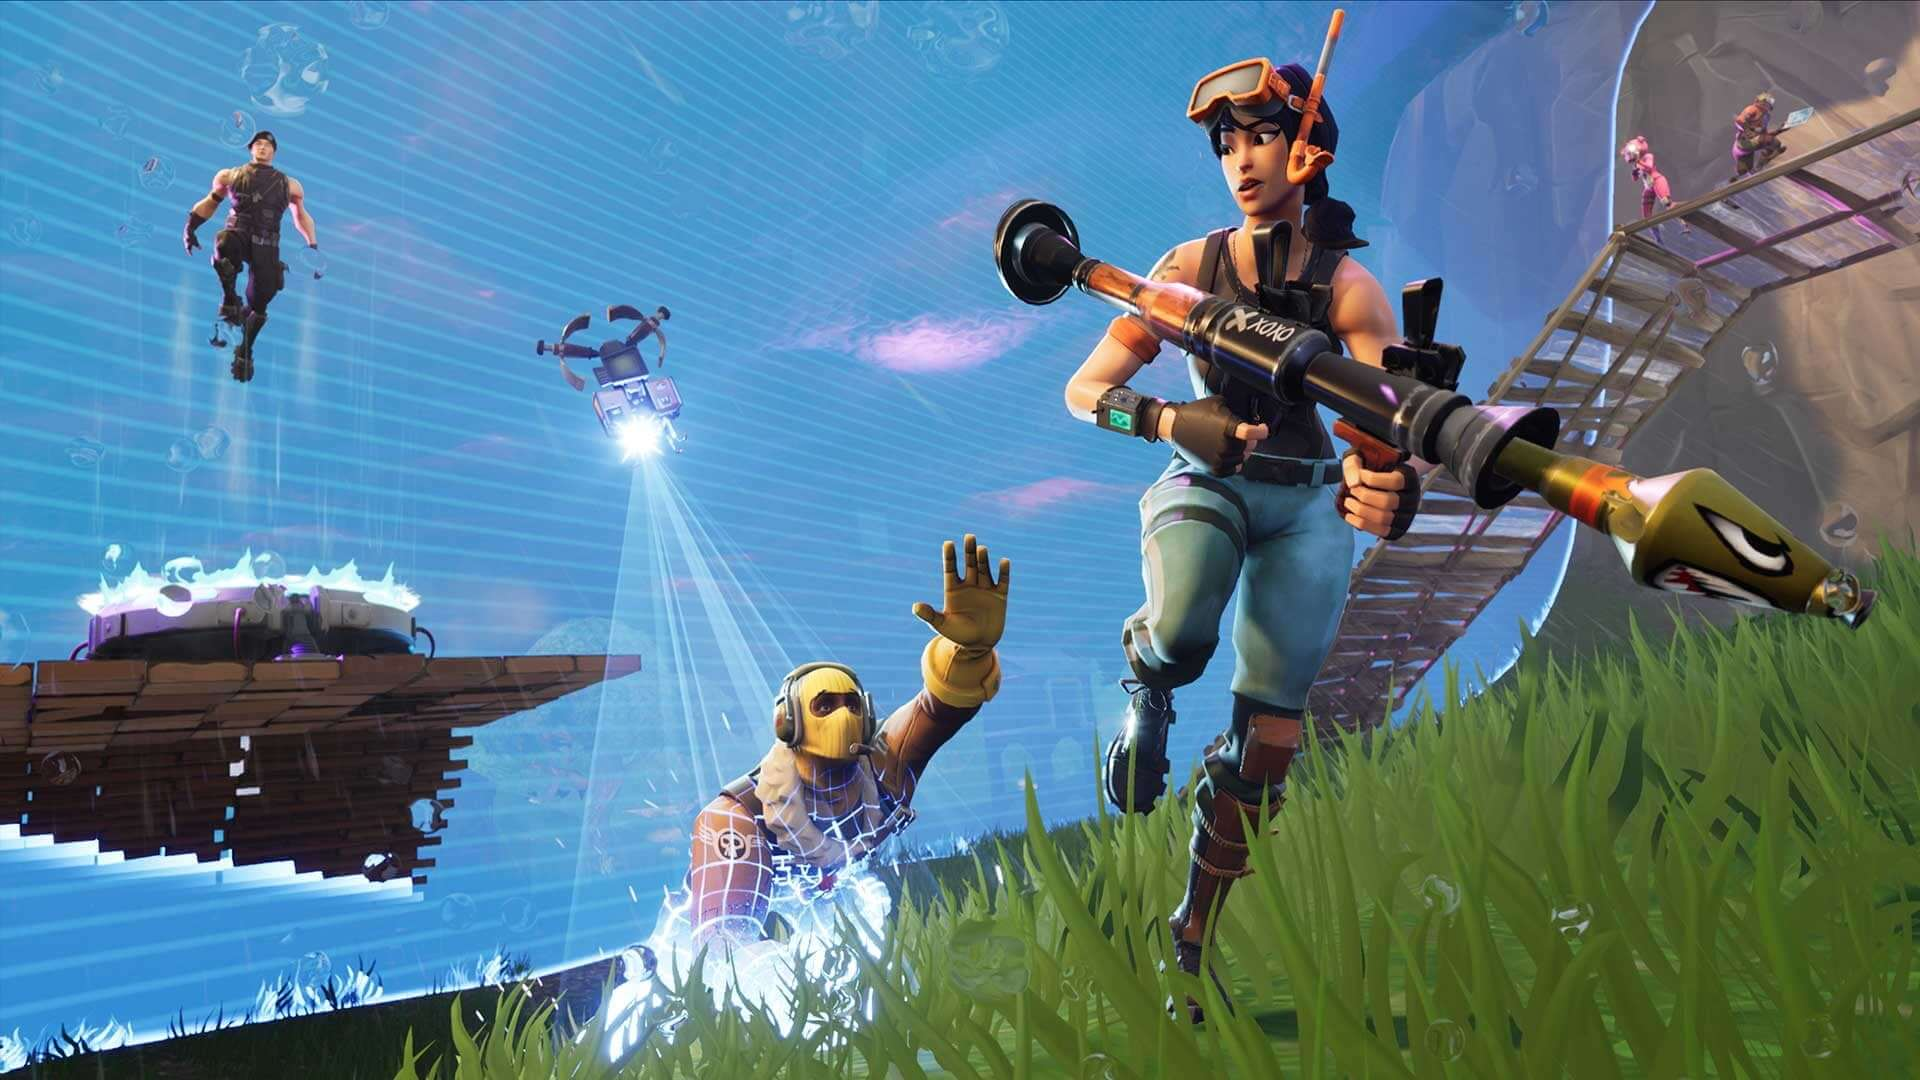 Epic Games sues company behind disastrous Fortnite Live festival